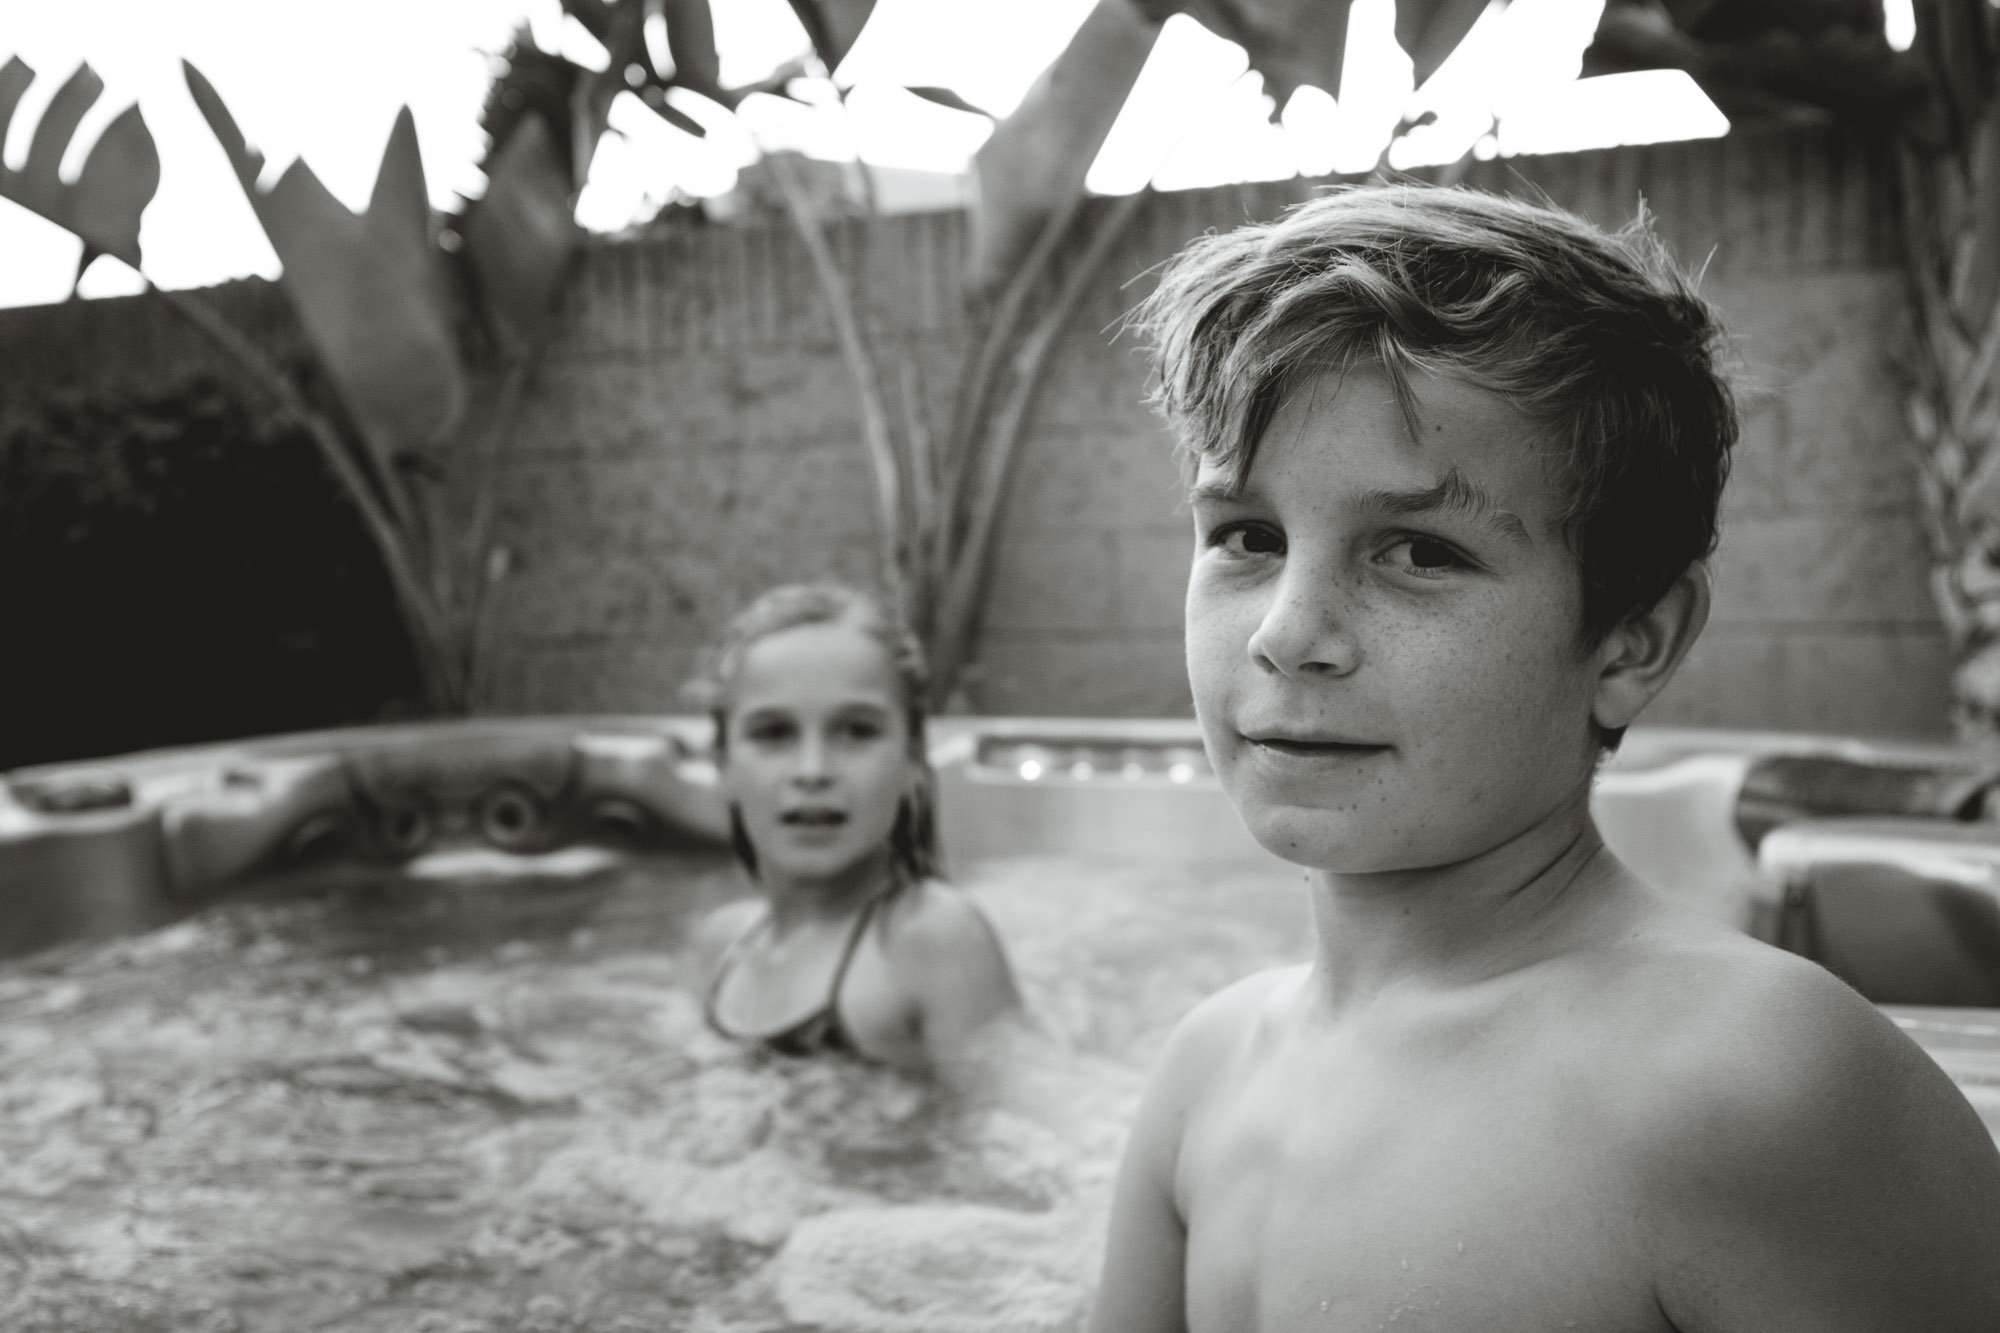 Caleb in the jacuzzi